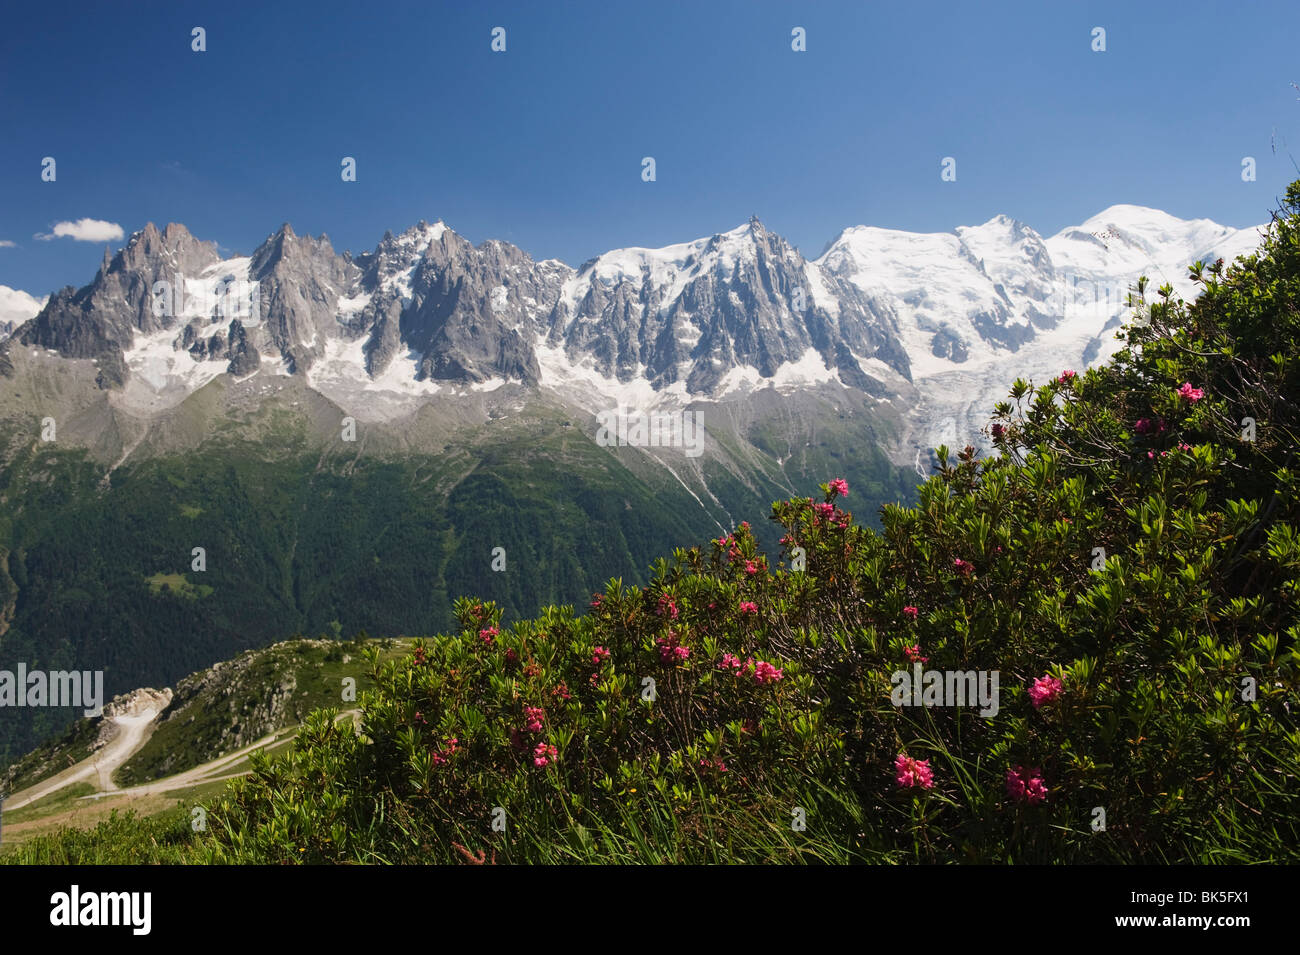 Mont Blanc and Chamonix Valley, Rhone Alps, France, Europe - Stock Image